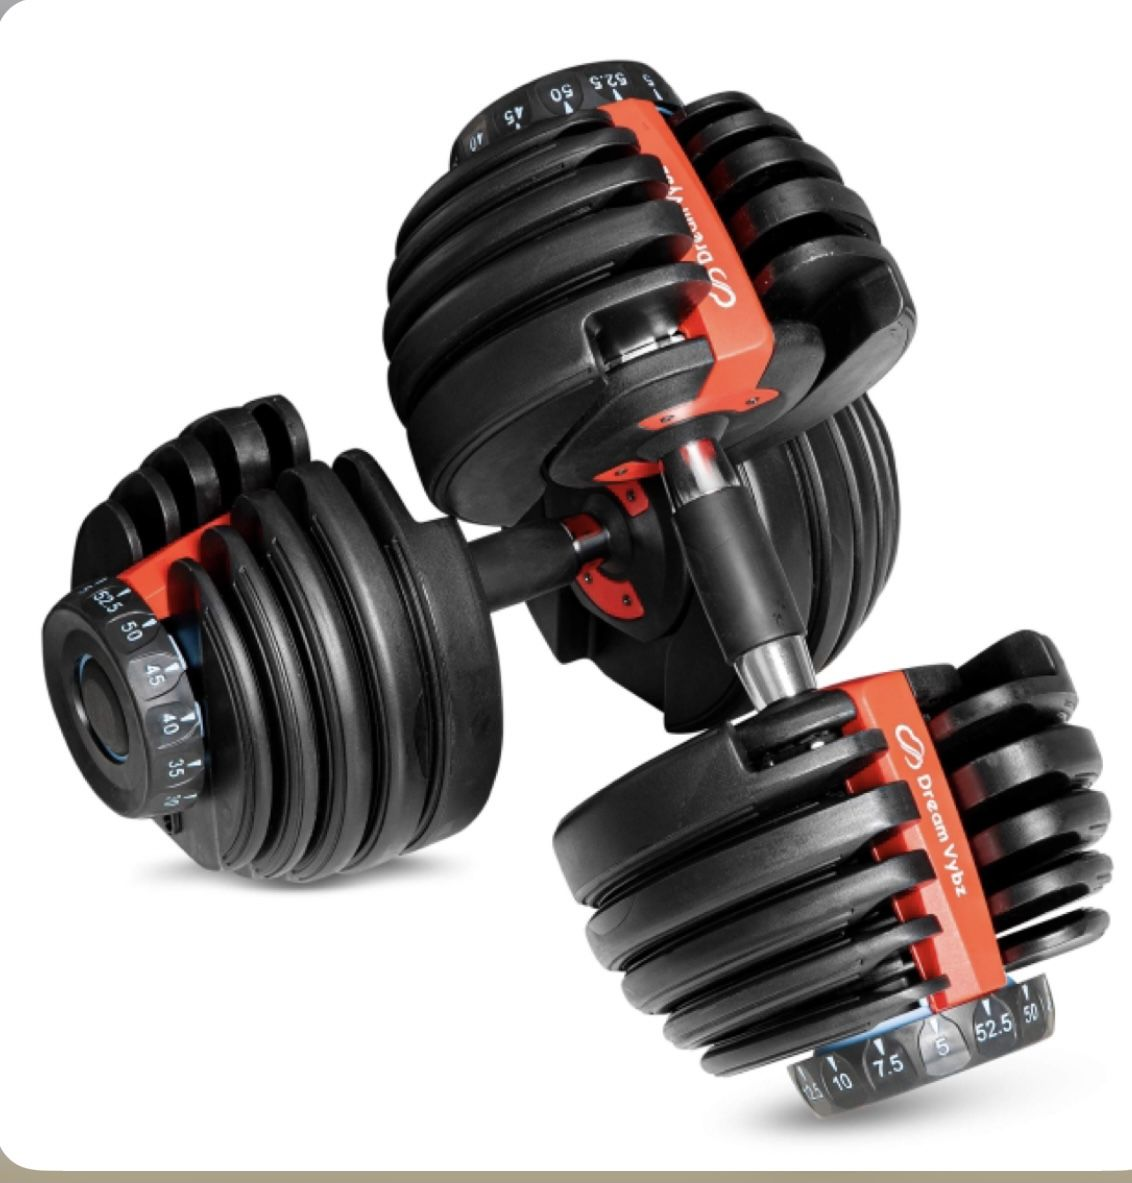 DREAM VYBZ (Single Adjustable Dumbbell 5 to 52.5 lbs  Weights  Barbell  Exercise & Fitness Dumbbells  Weight Bench  Workout Equipment  dumbellsweights